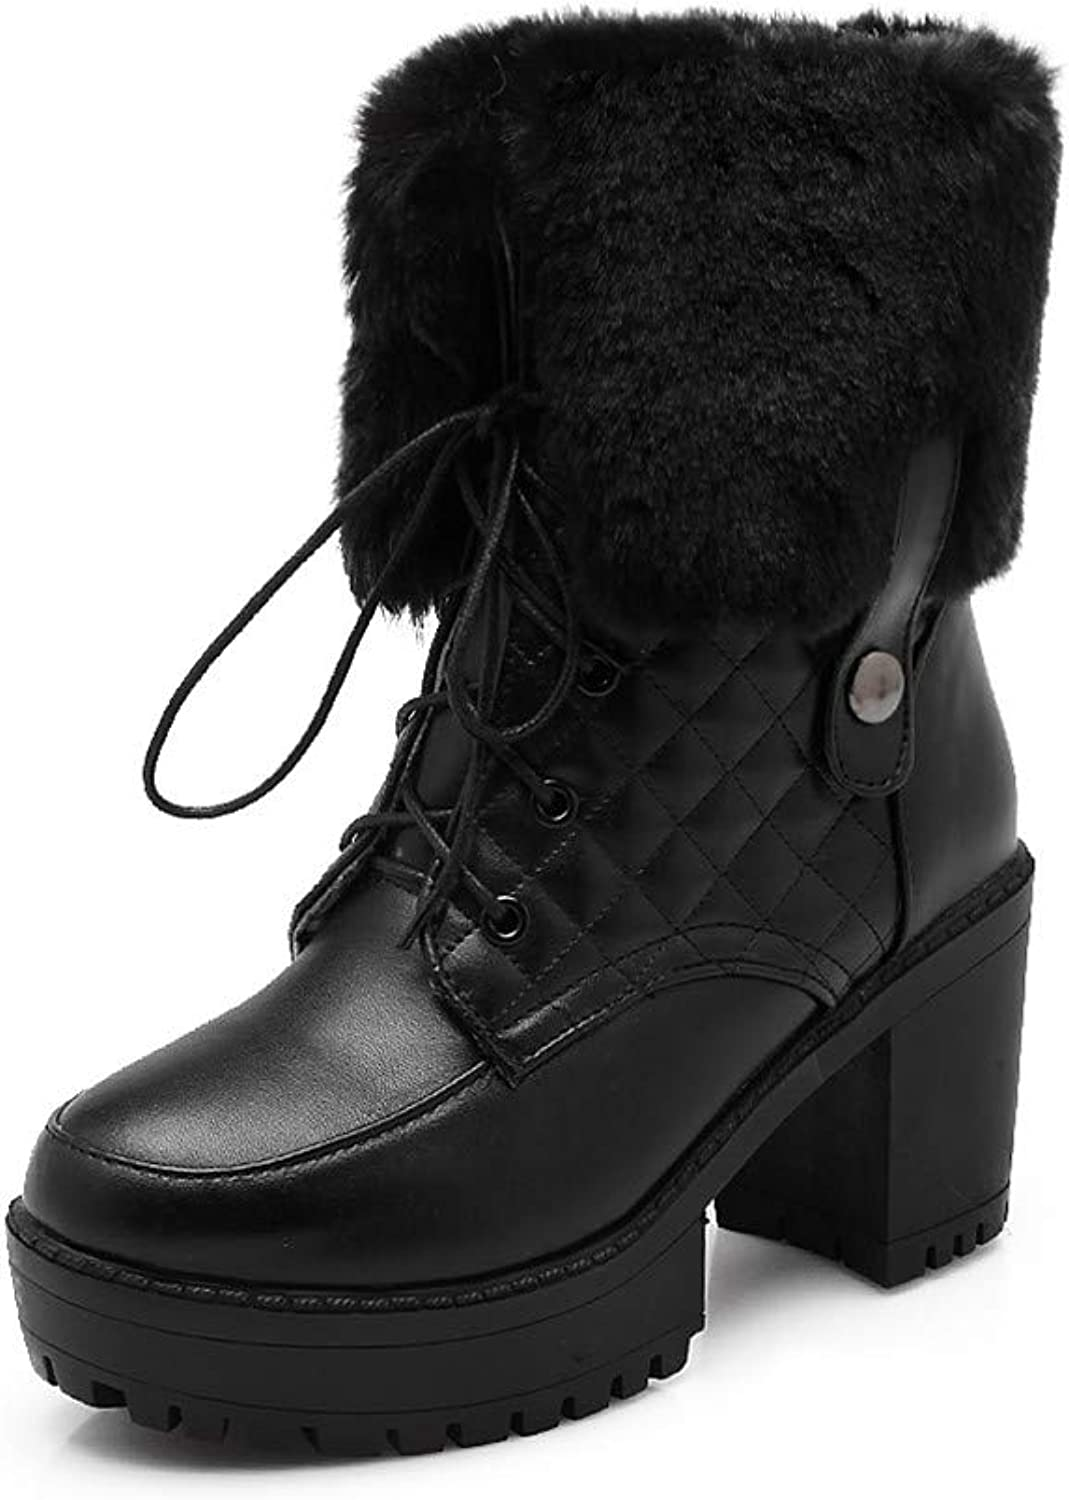 MFairy Women's Winter Platform Combat Boots Ankle-High Lace-up Chunky Boots